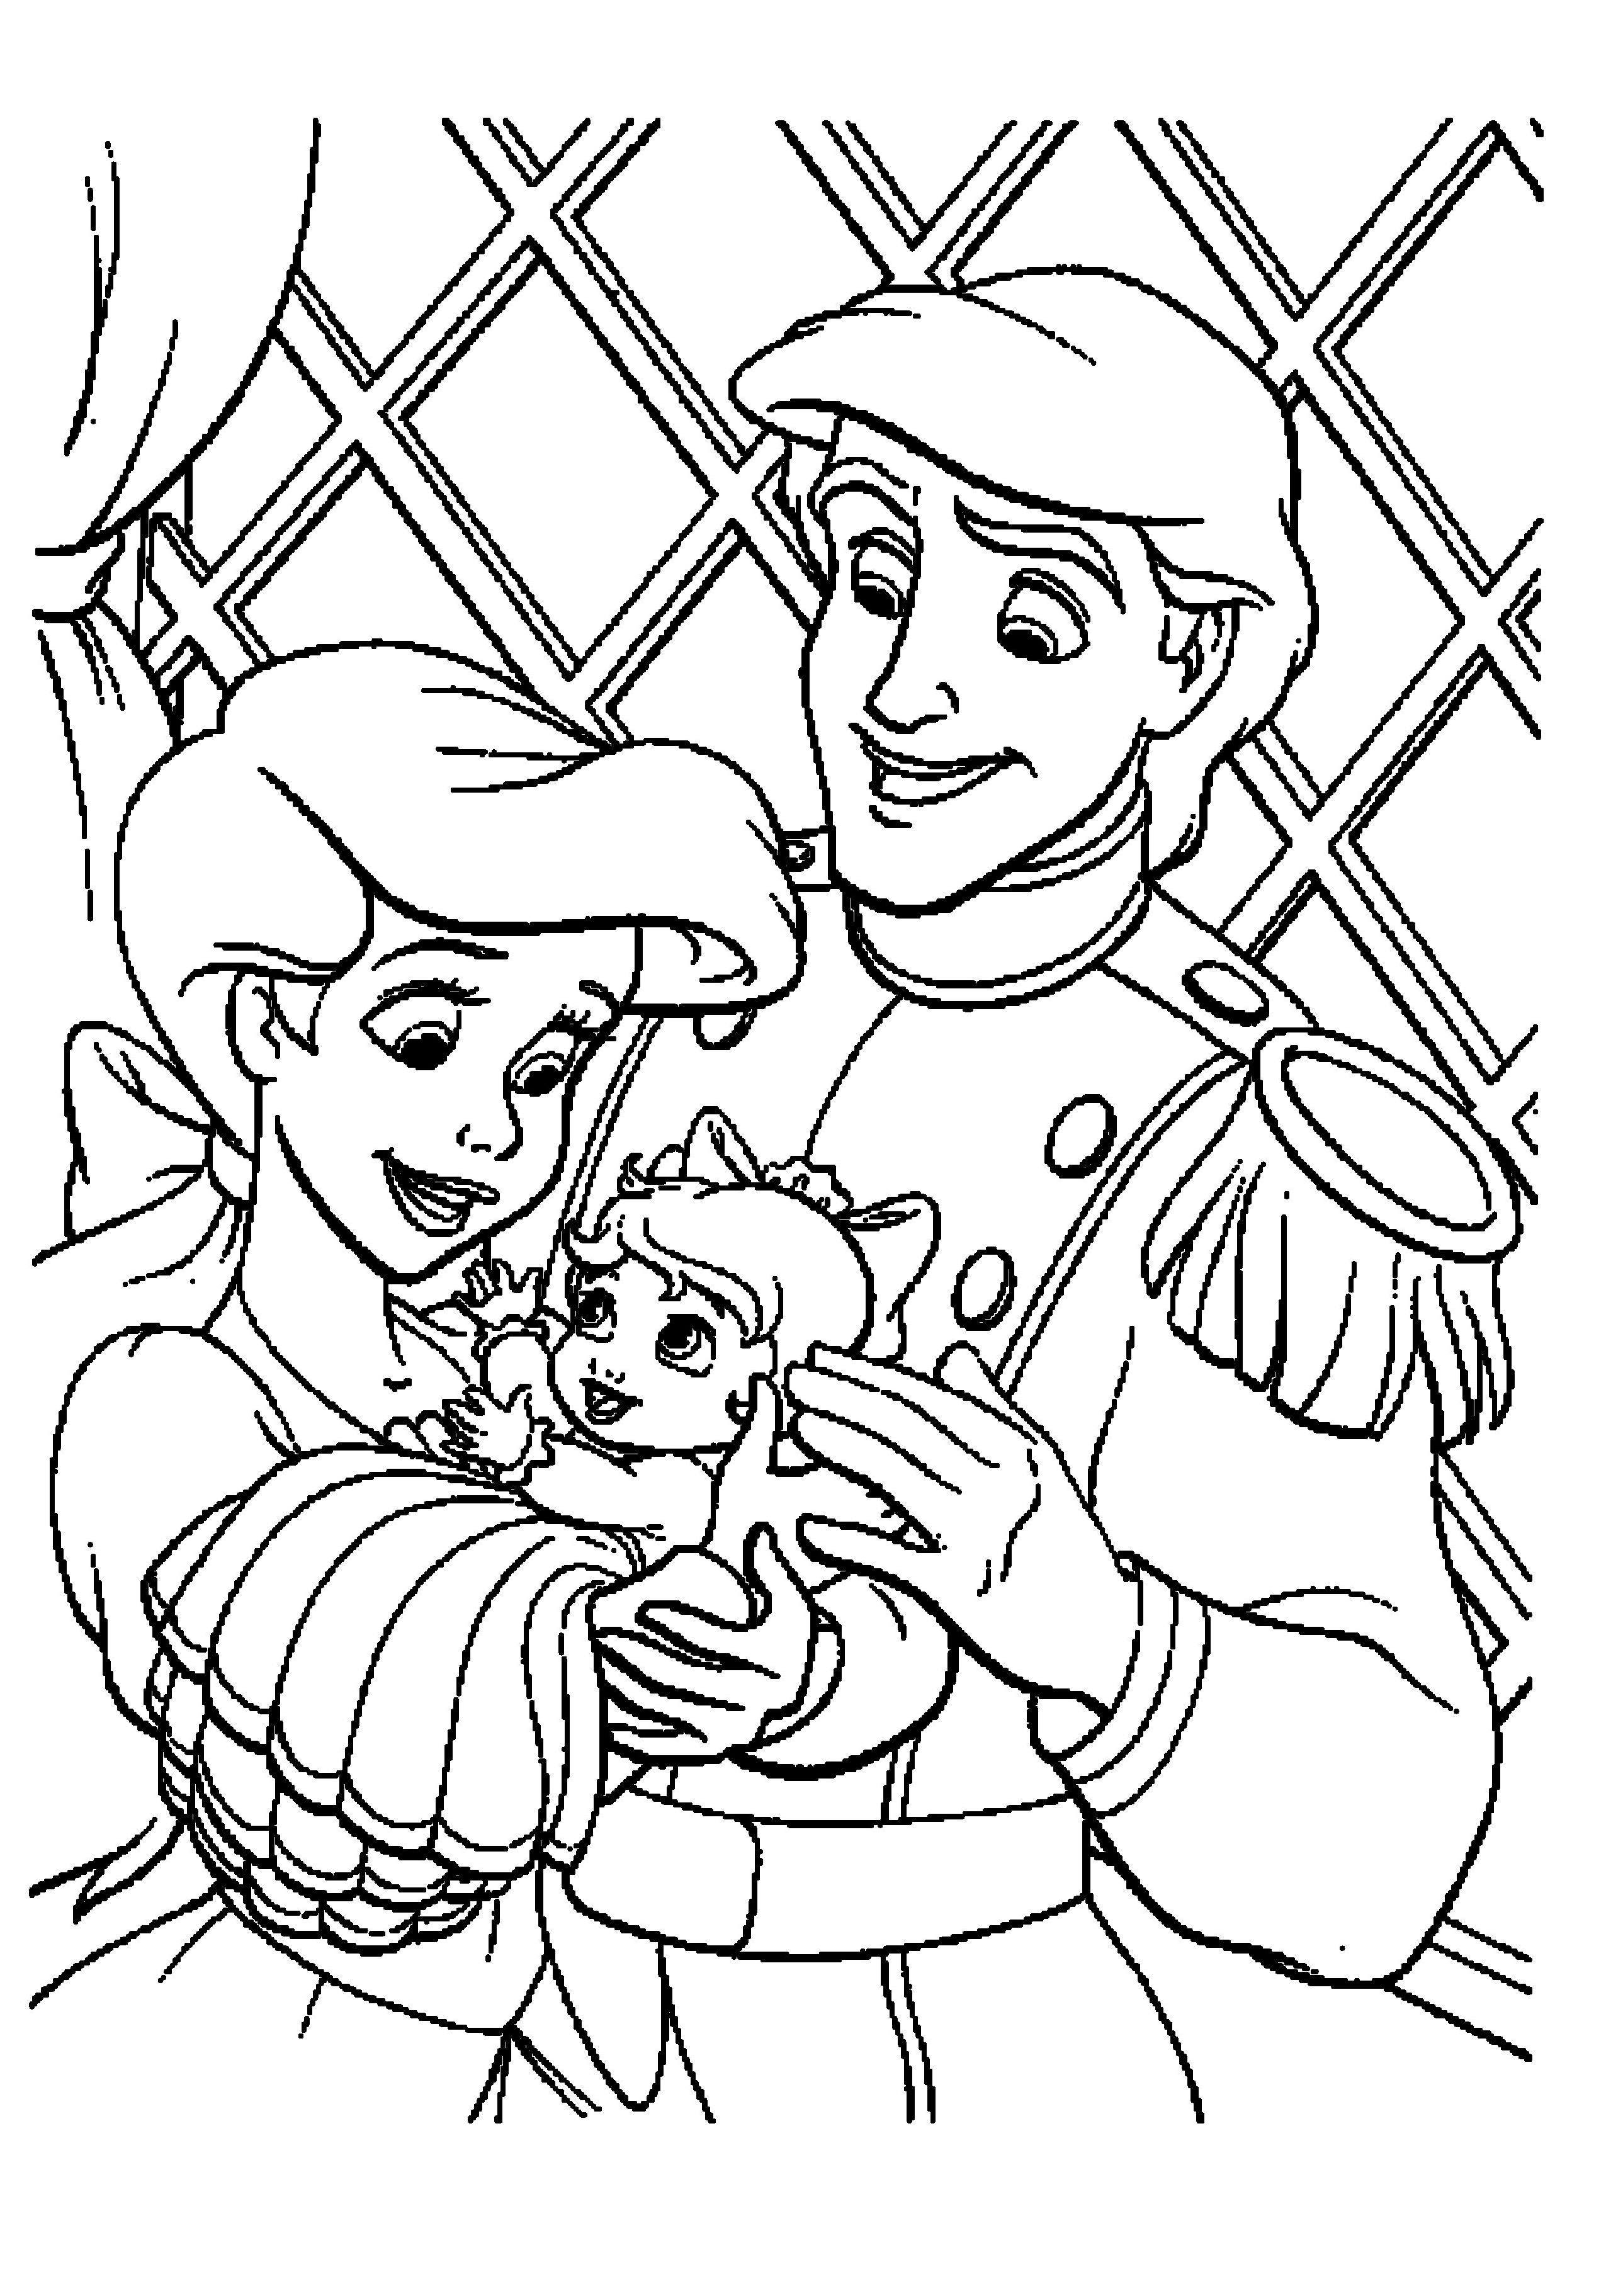 ariel little mermaid coloring pages family prince and kidsjpg JPEG